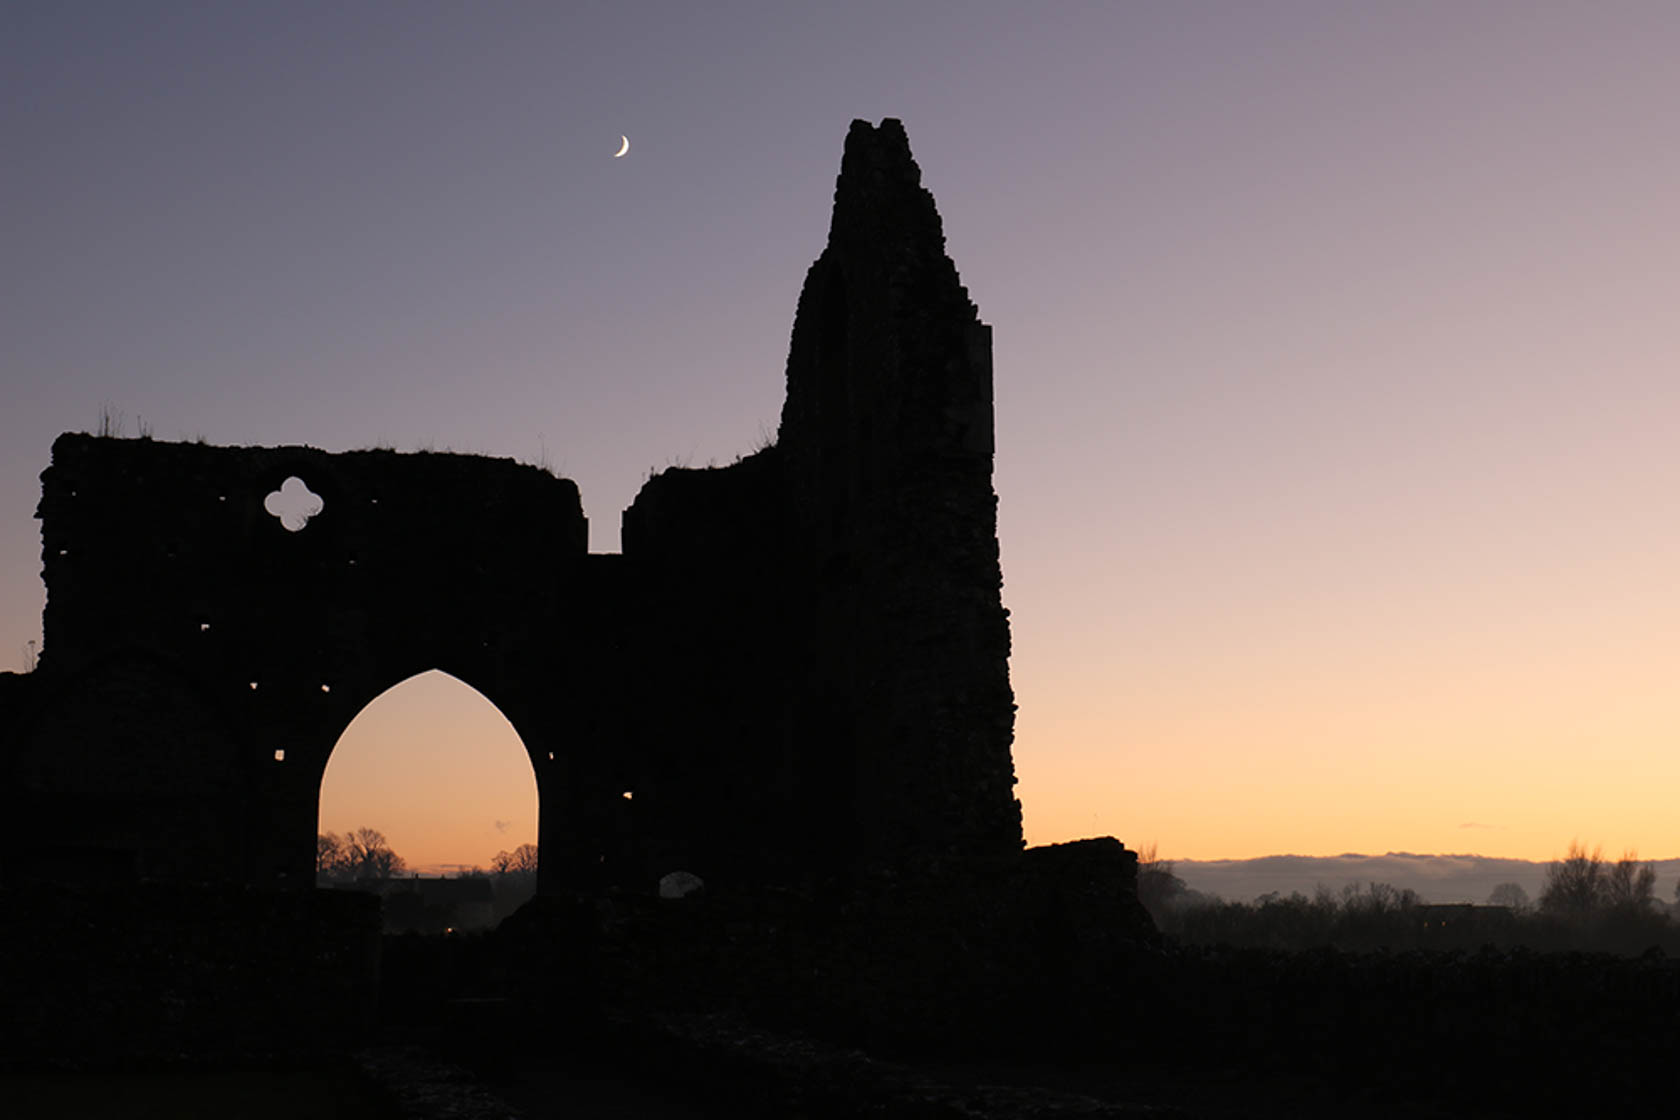 Silhouette of a stone structure taken with the Canon EOS 750D digital SLR camera